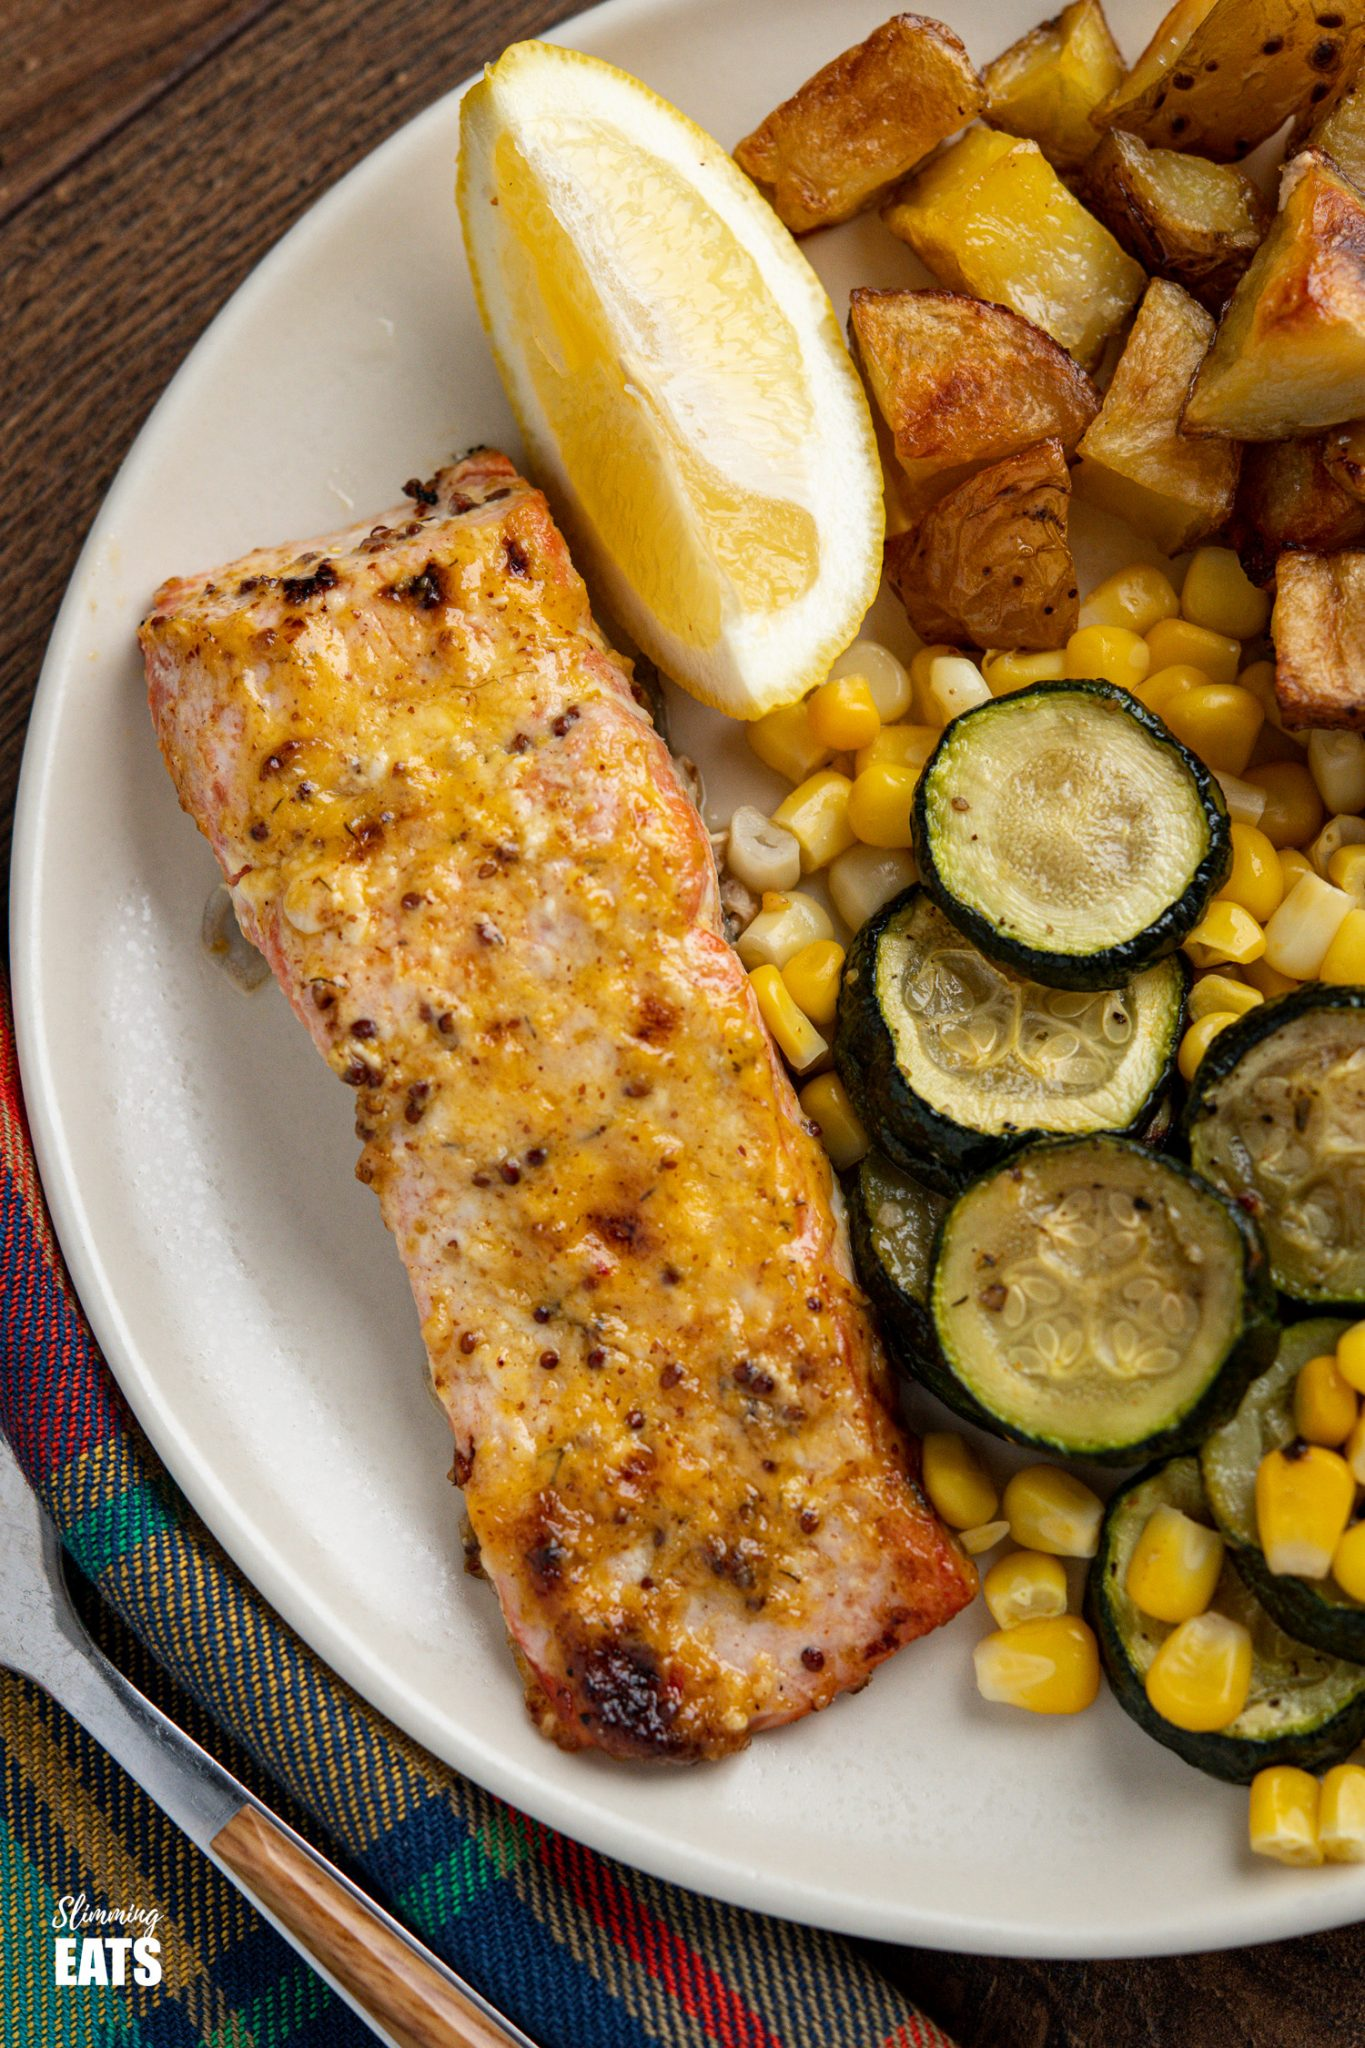 Oven Baked Mustard Salmon Fillets on white plate with roast potato cubes, zucchini and lemon wedge